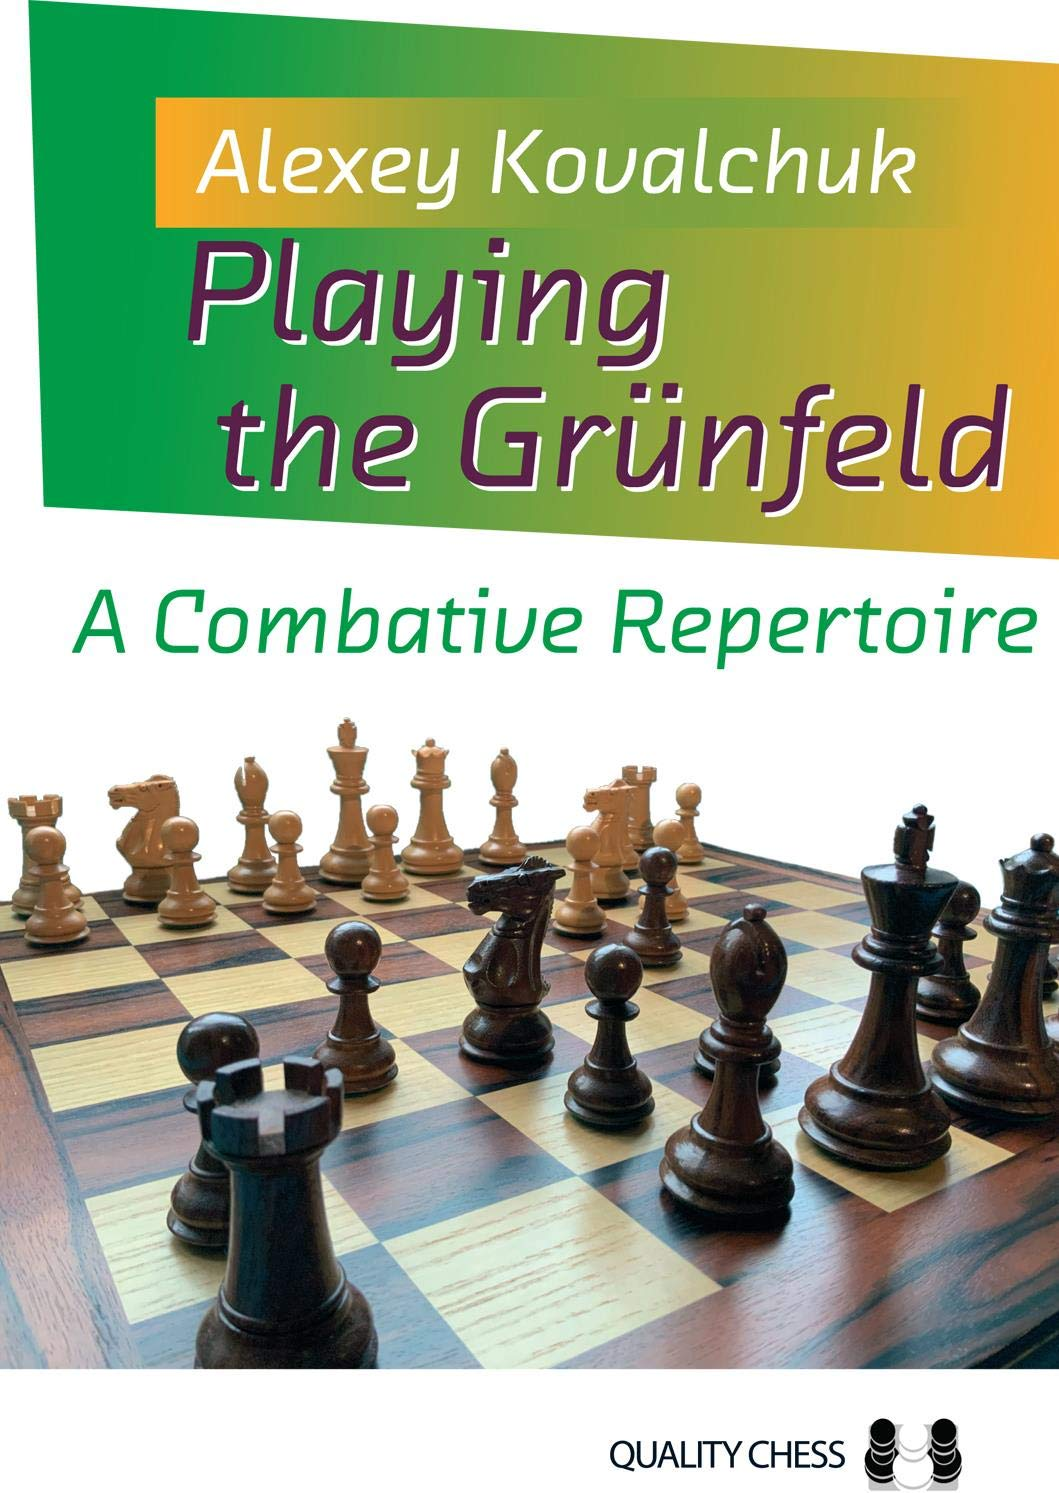 Playing the Grünfeld: A Combative Repertoire Book by Alexey Kovalchuk, Quality Chess, 2020